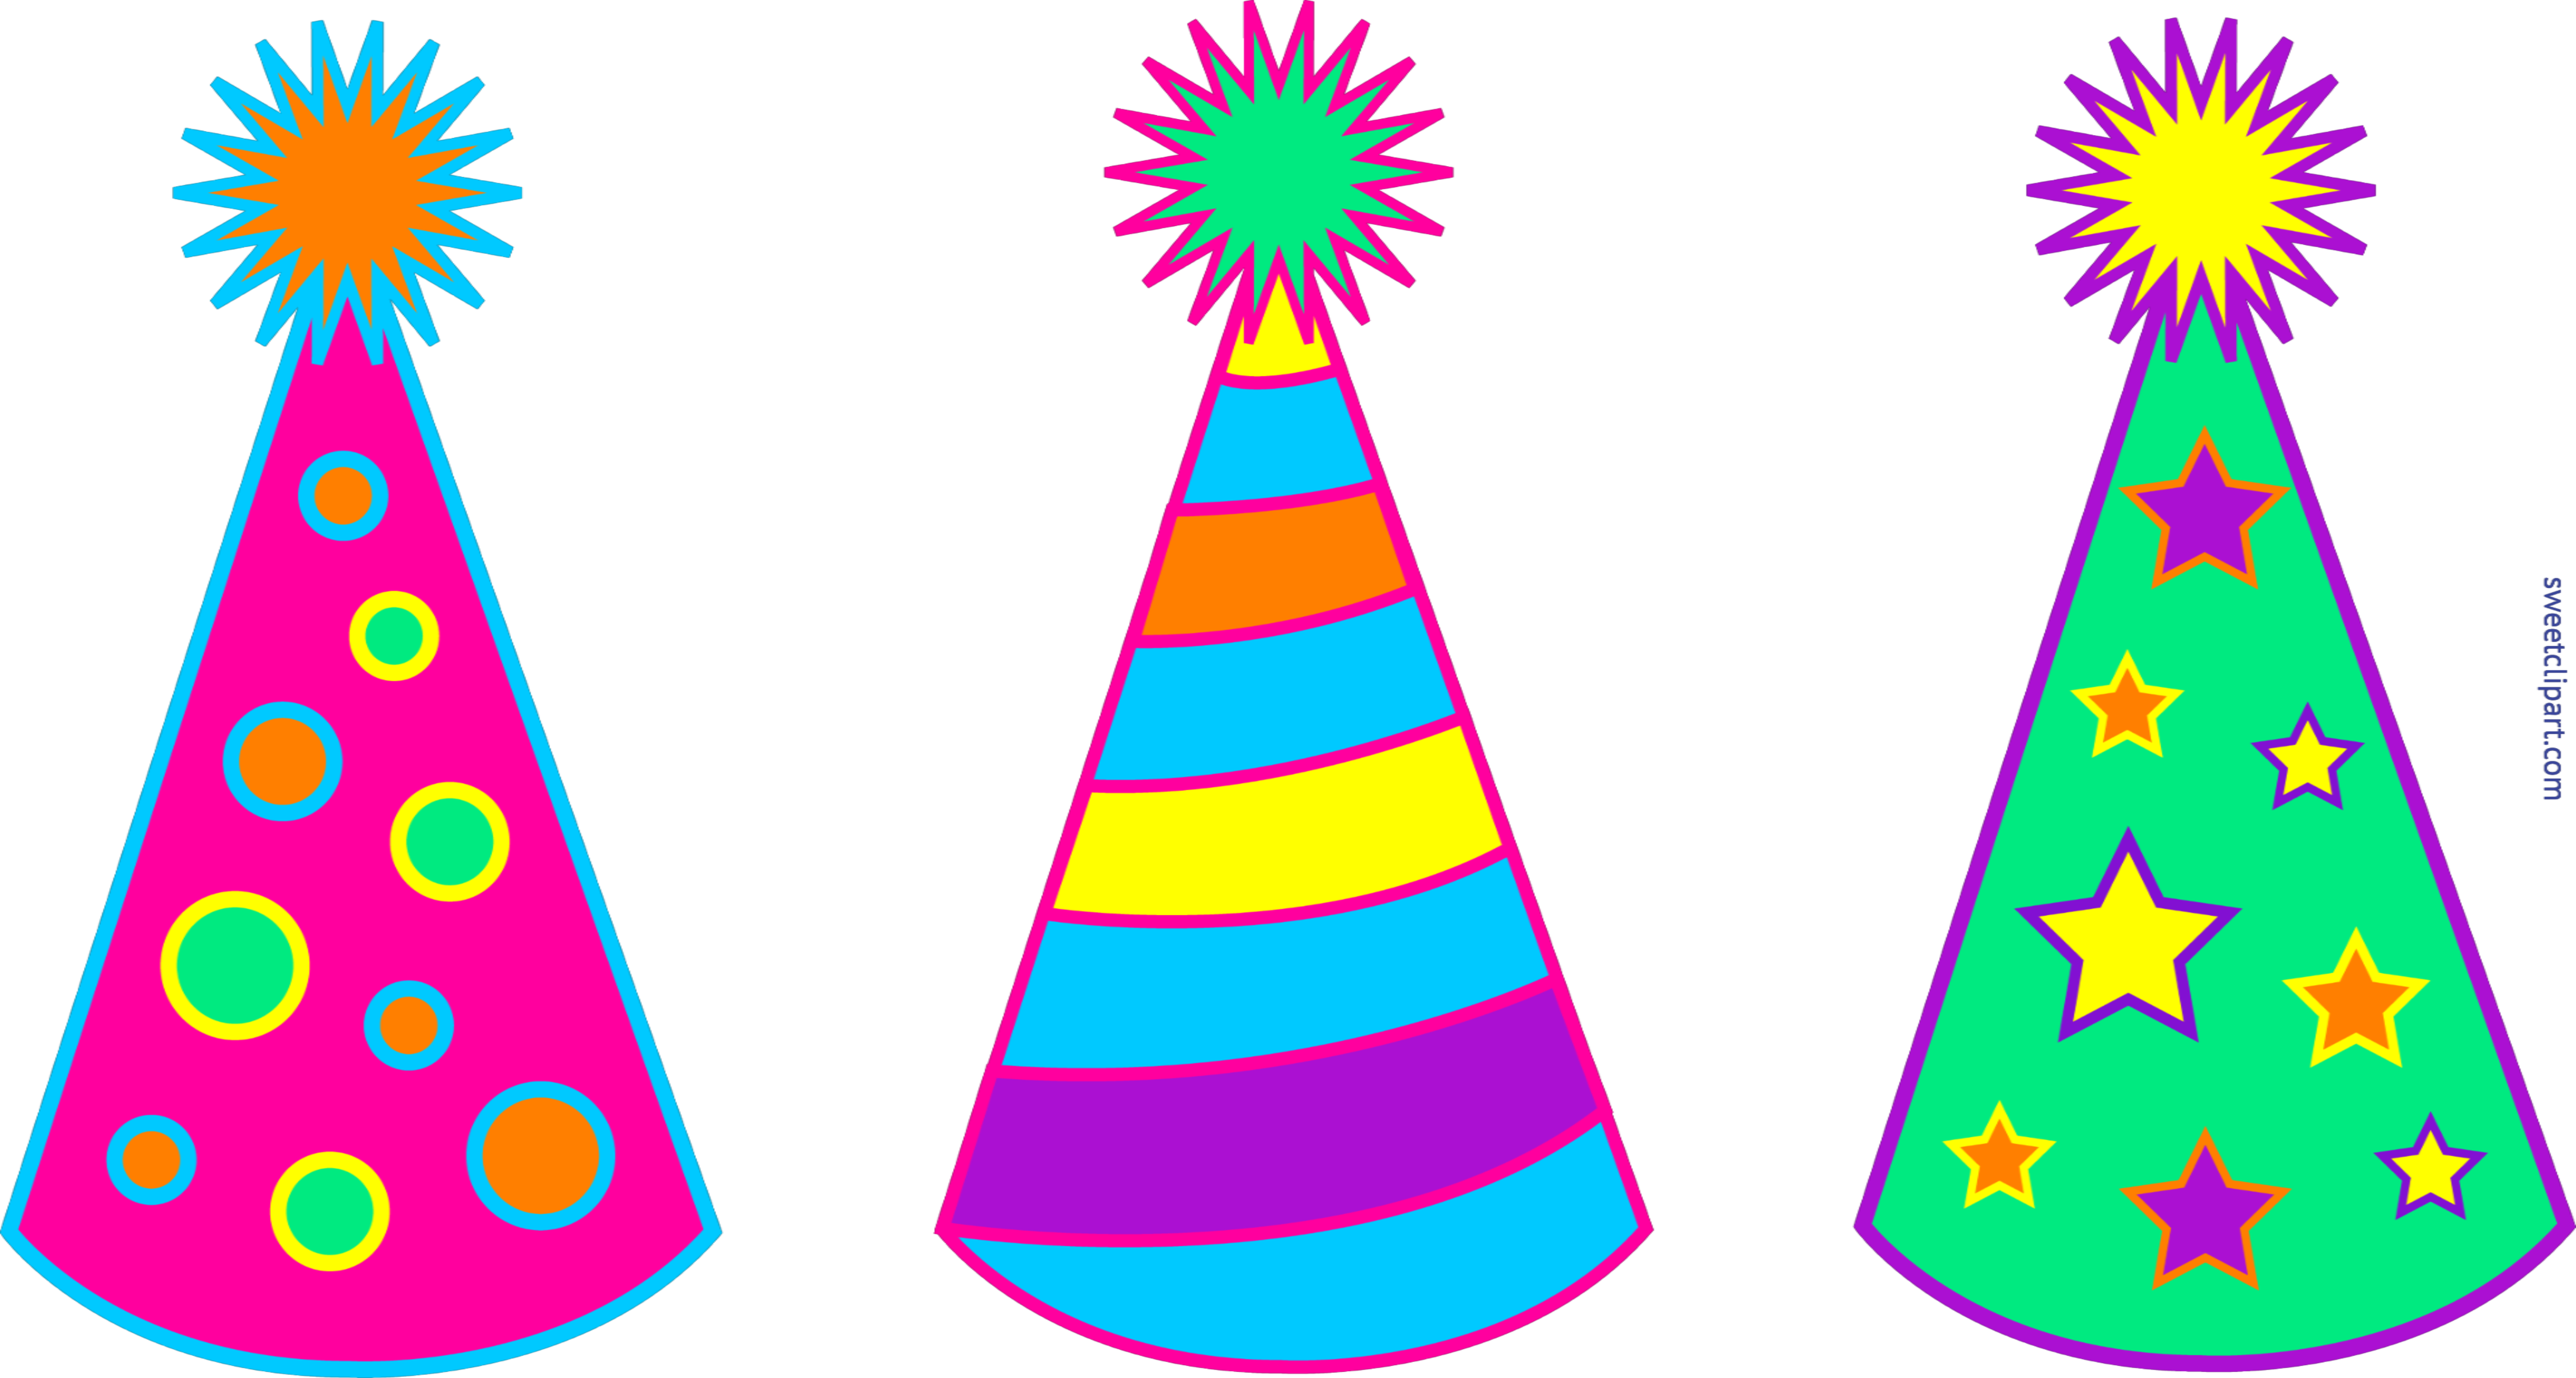 Birthday Party Clipart at GetDrawings.com.